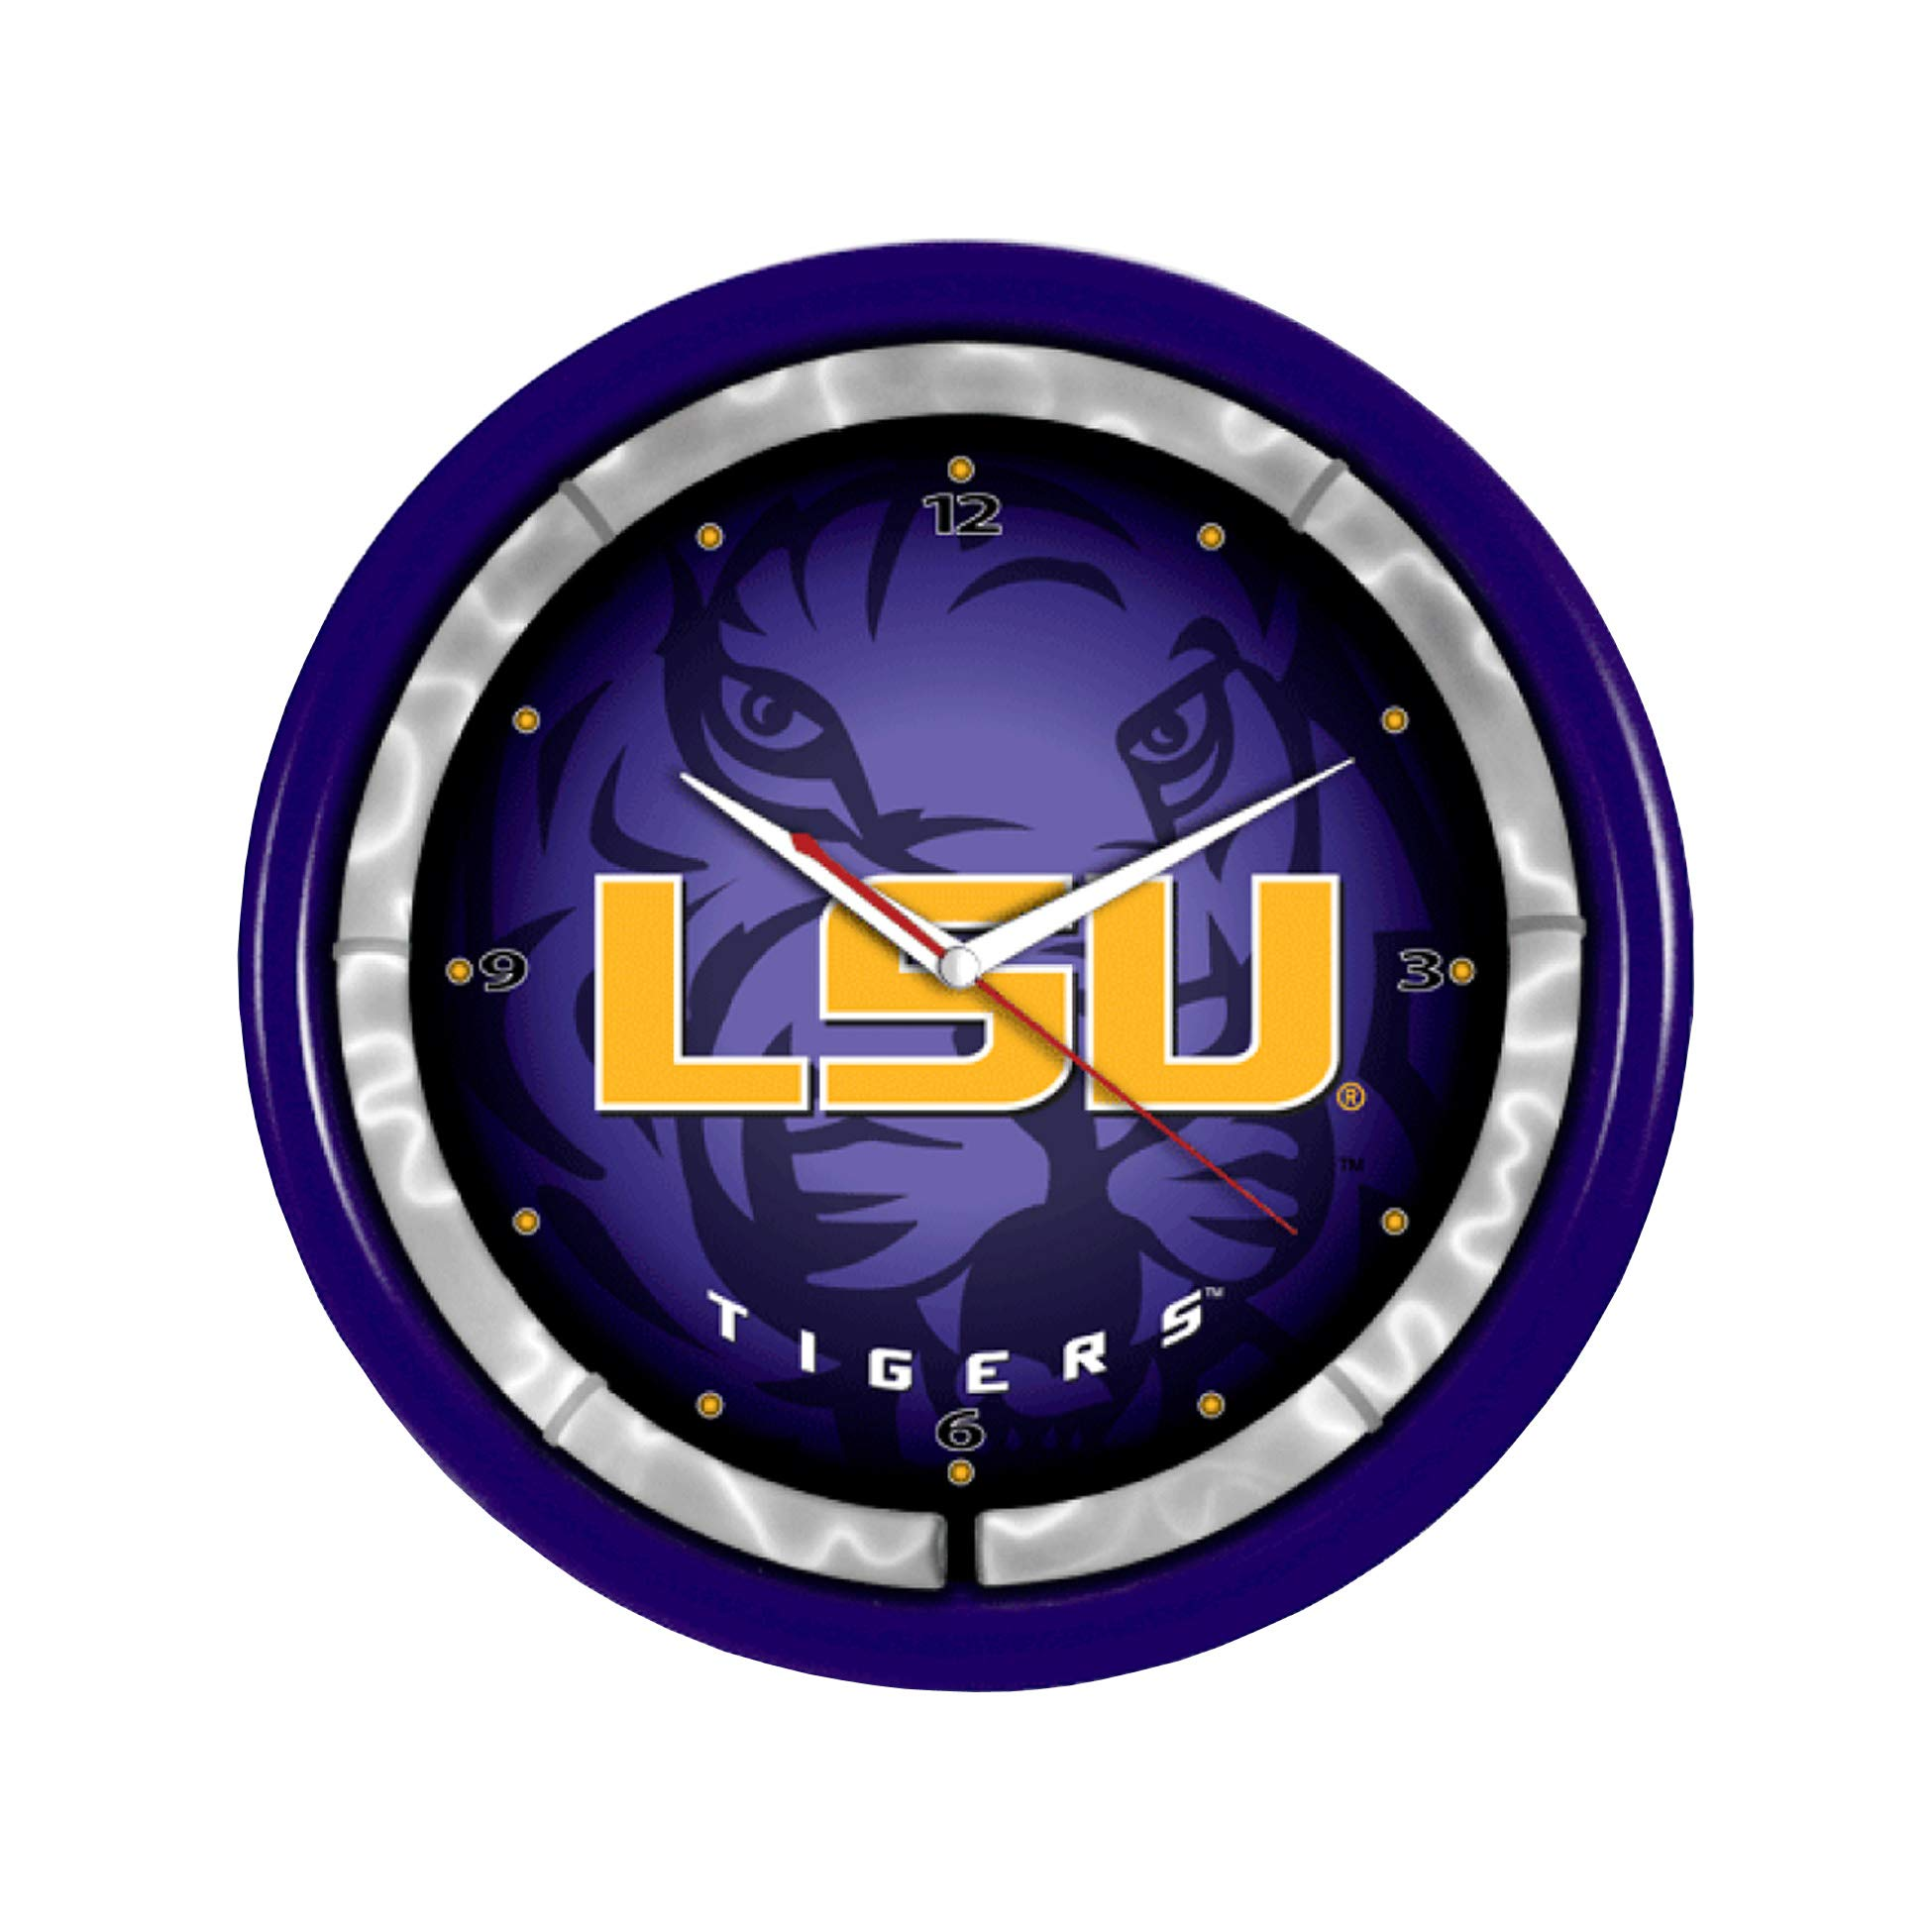 Authentic Street Signs NCAA College Team Plasma Clock (LSU Tigers) by Authentic Street Signs